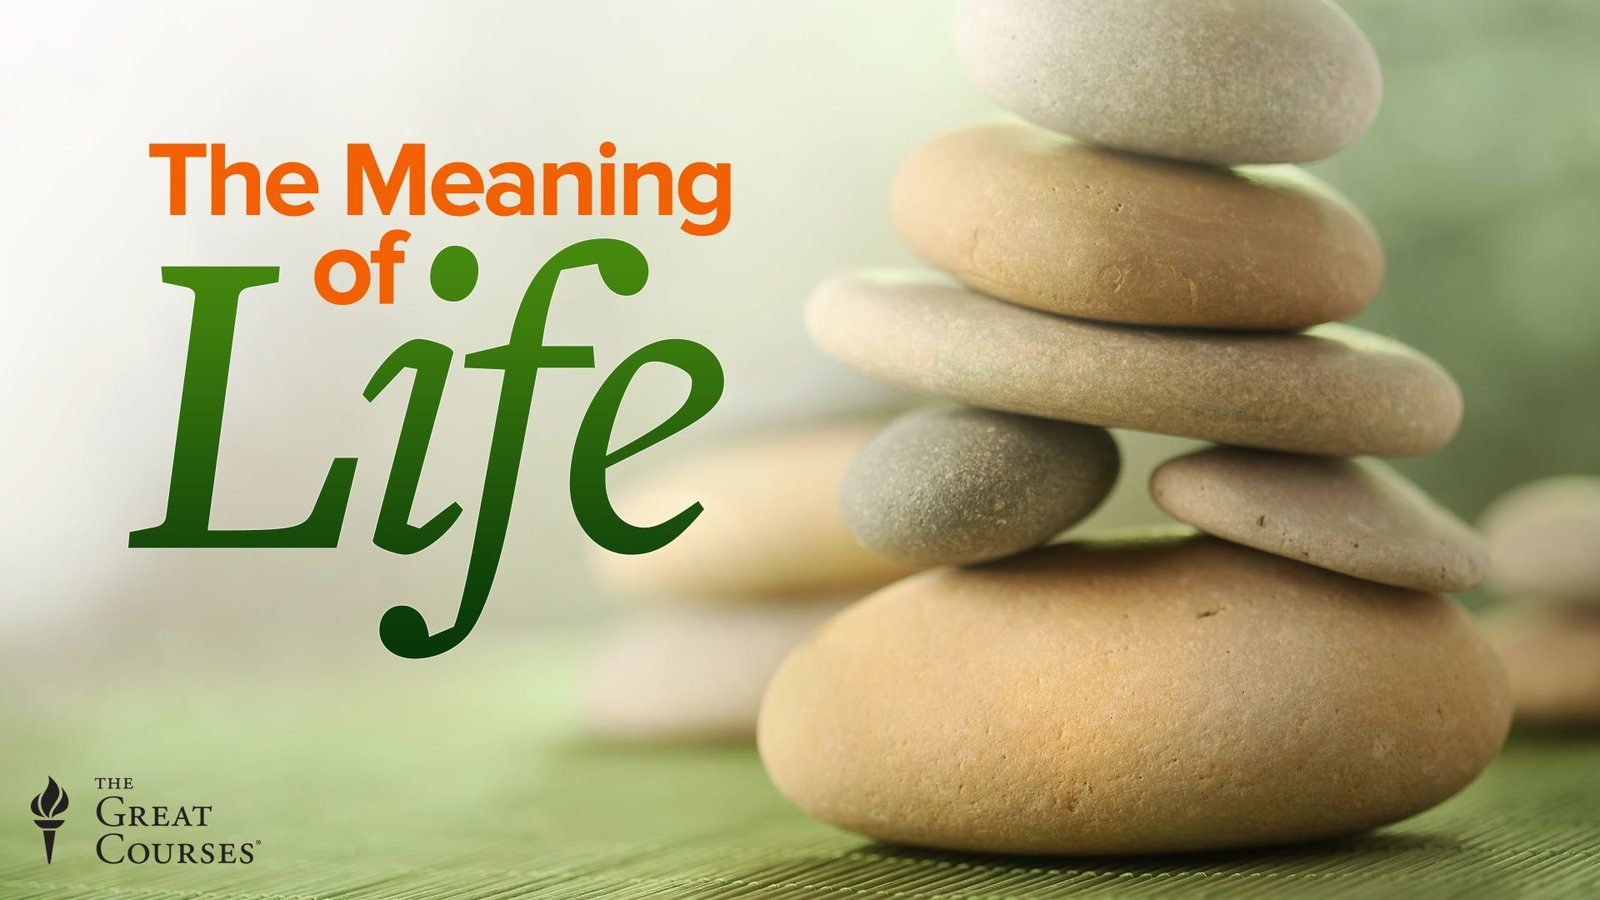 The Meaning of Life - Perspectives from the World's Great Intellectual Traditions